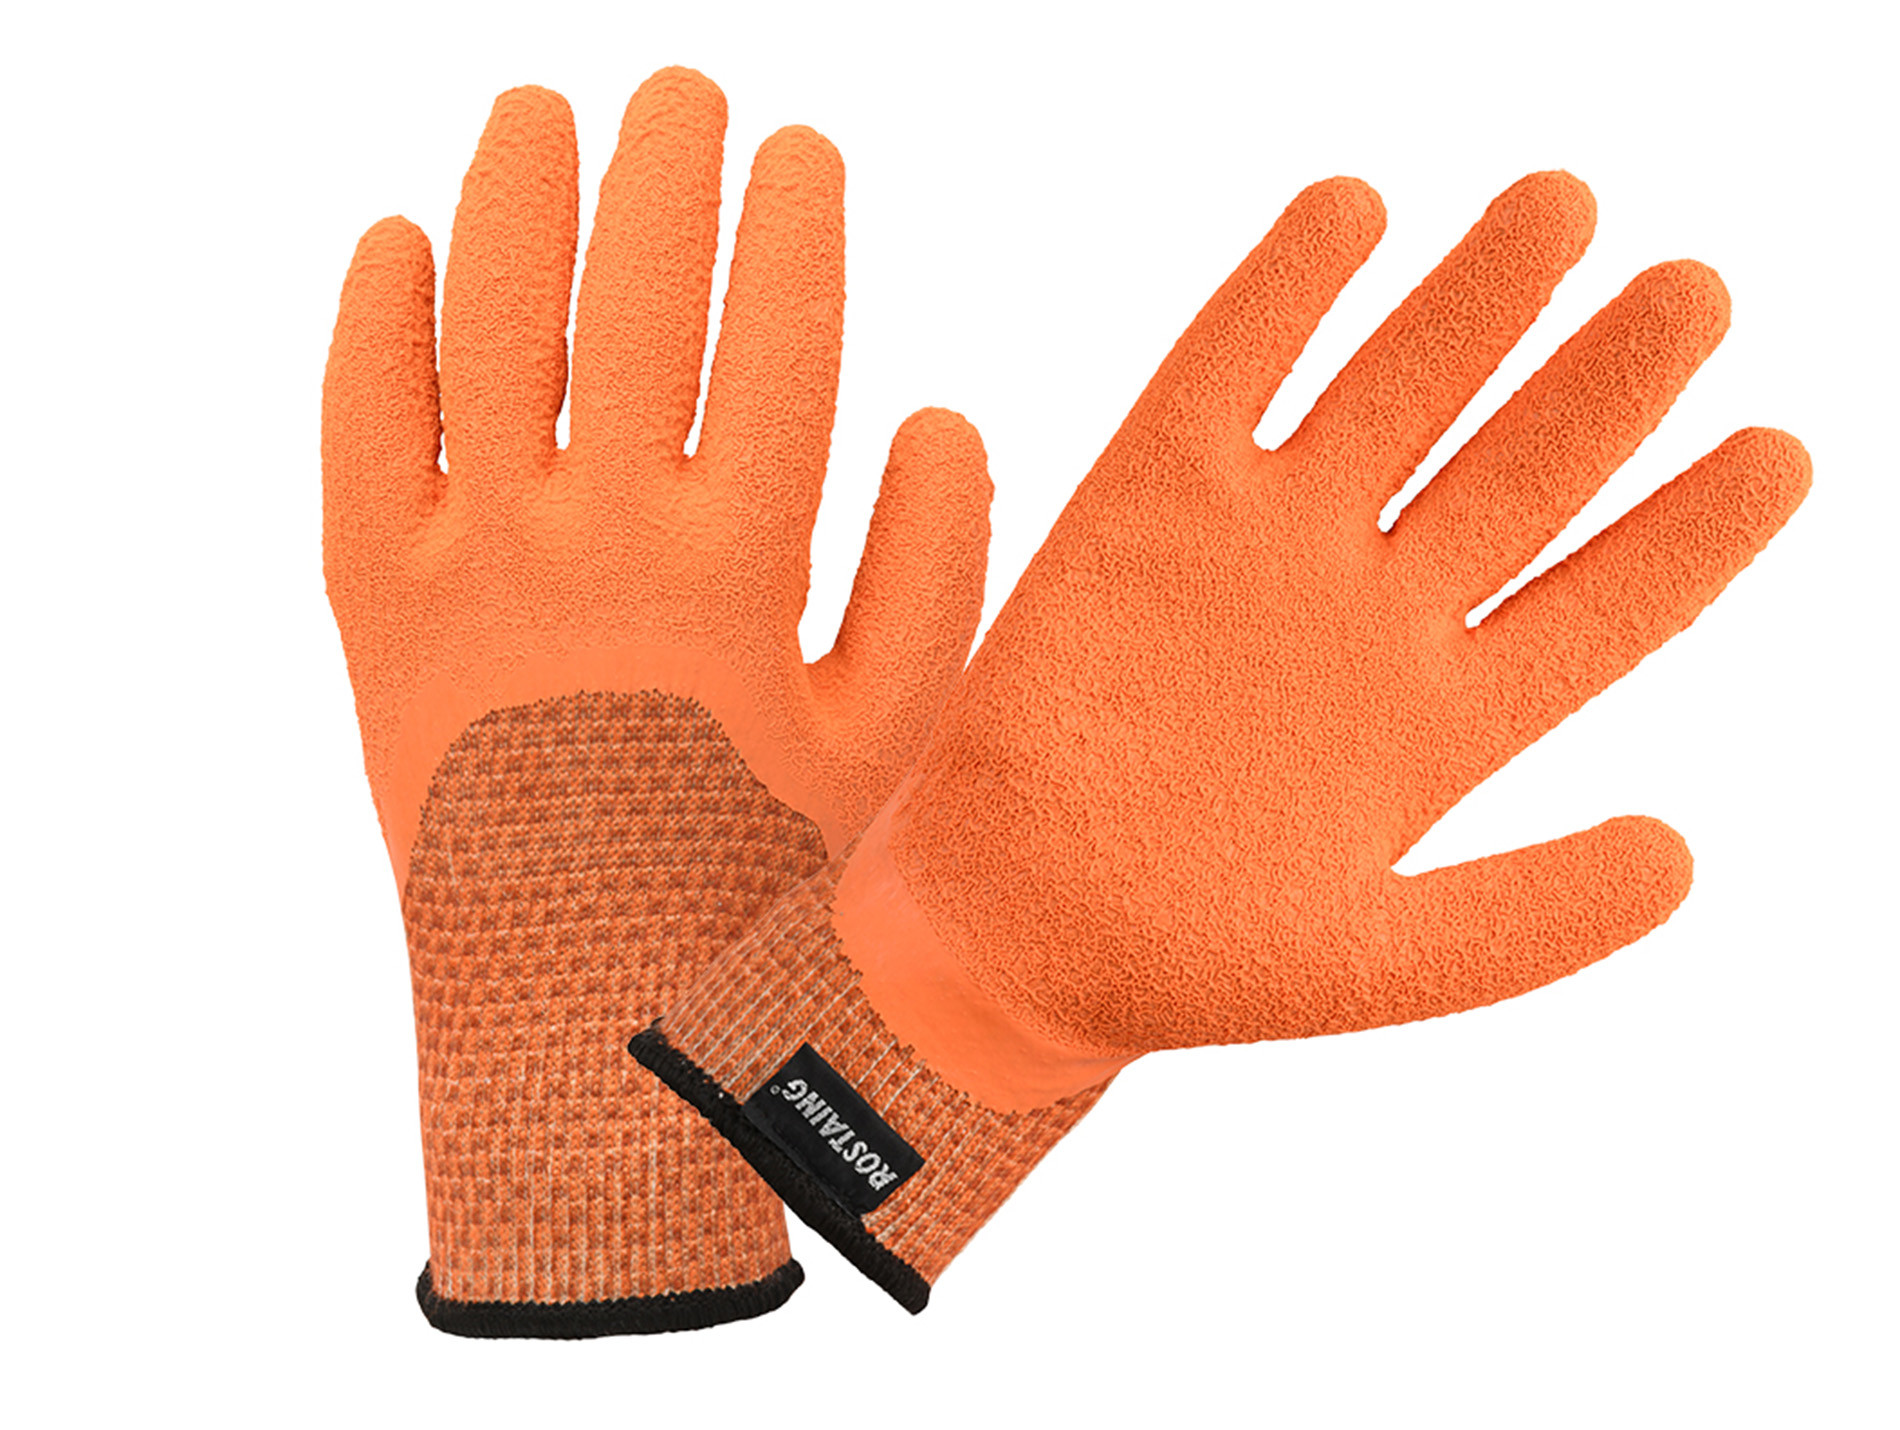 Gants de protection jardinage ROSTAING Visible - Homme